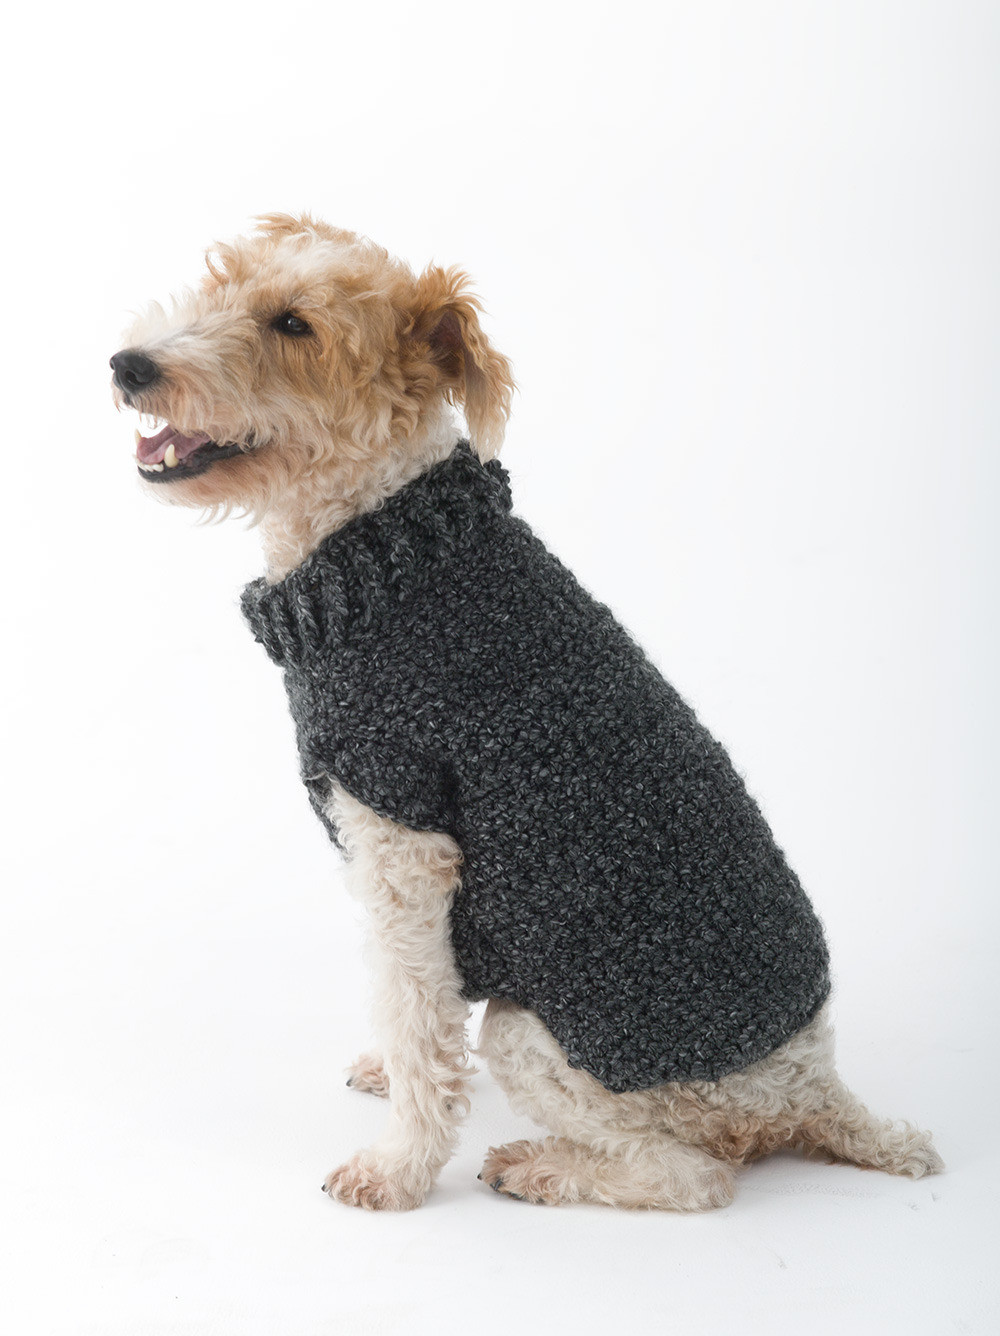 Crochet Dog Coat Pattern Fresh Poet Dog Sweater In Lion Brand Homespun L Of Marvelous 41 Photos Crochet Dog Coat Pattern